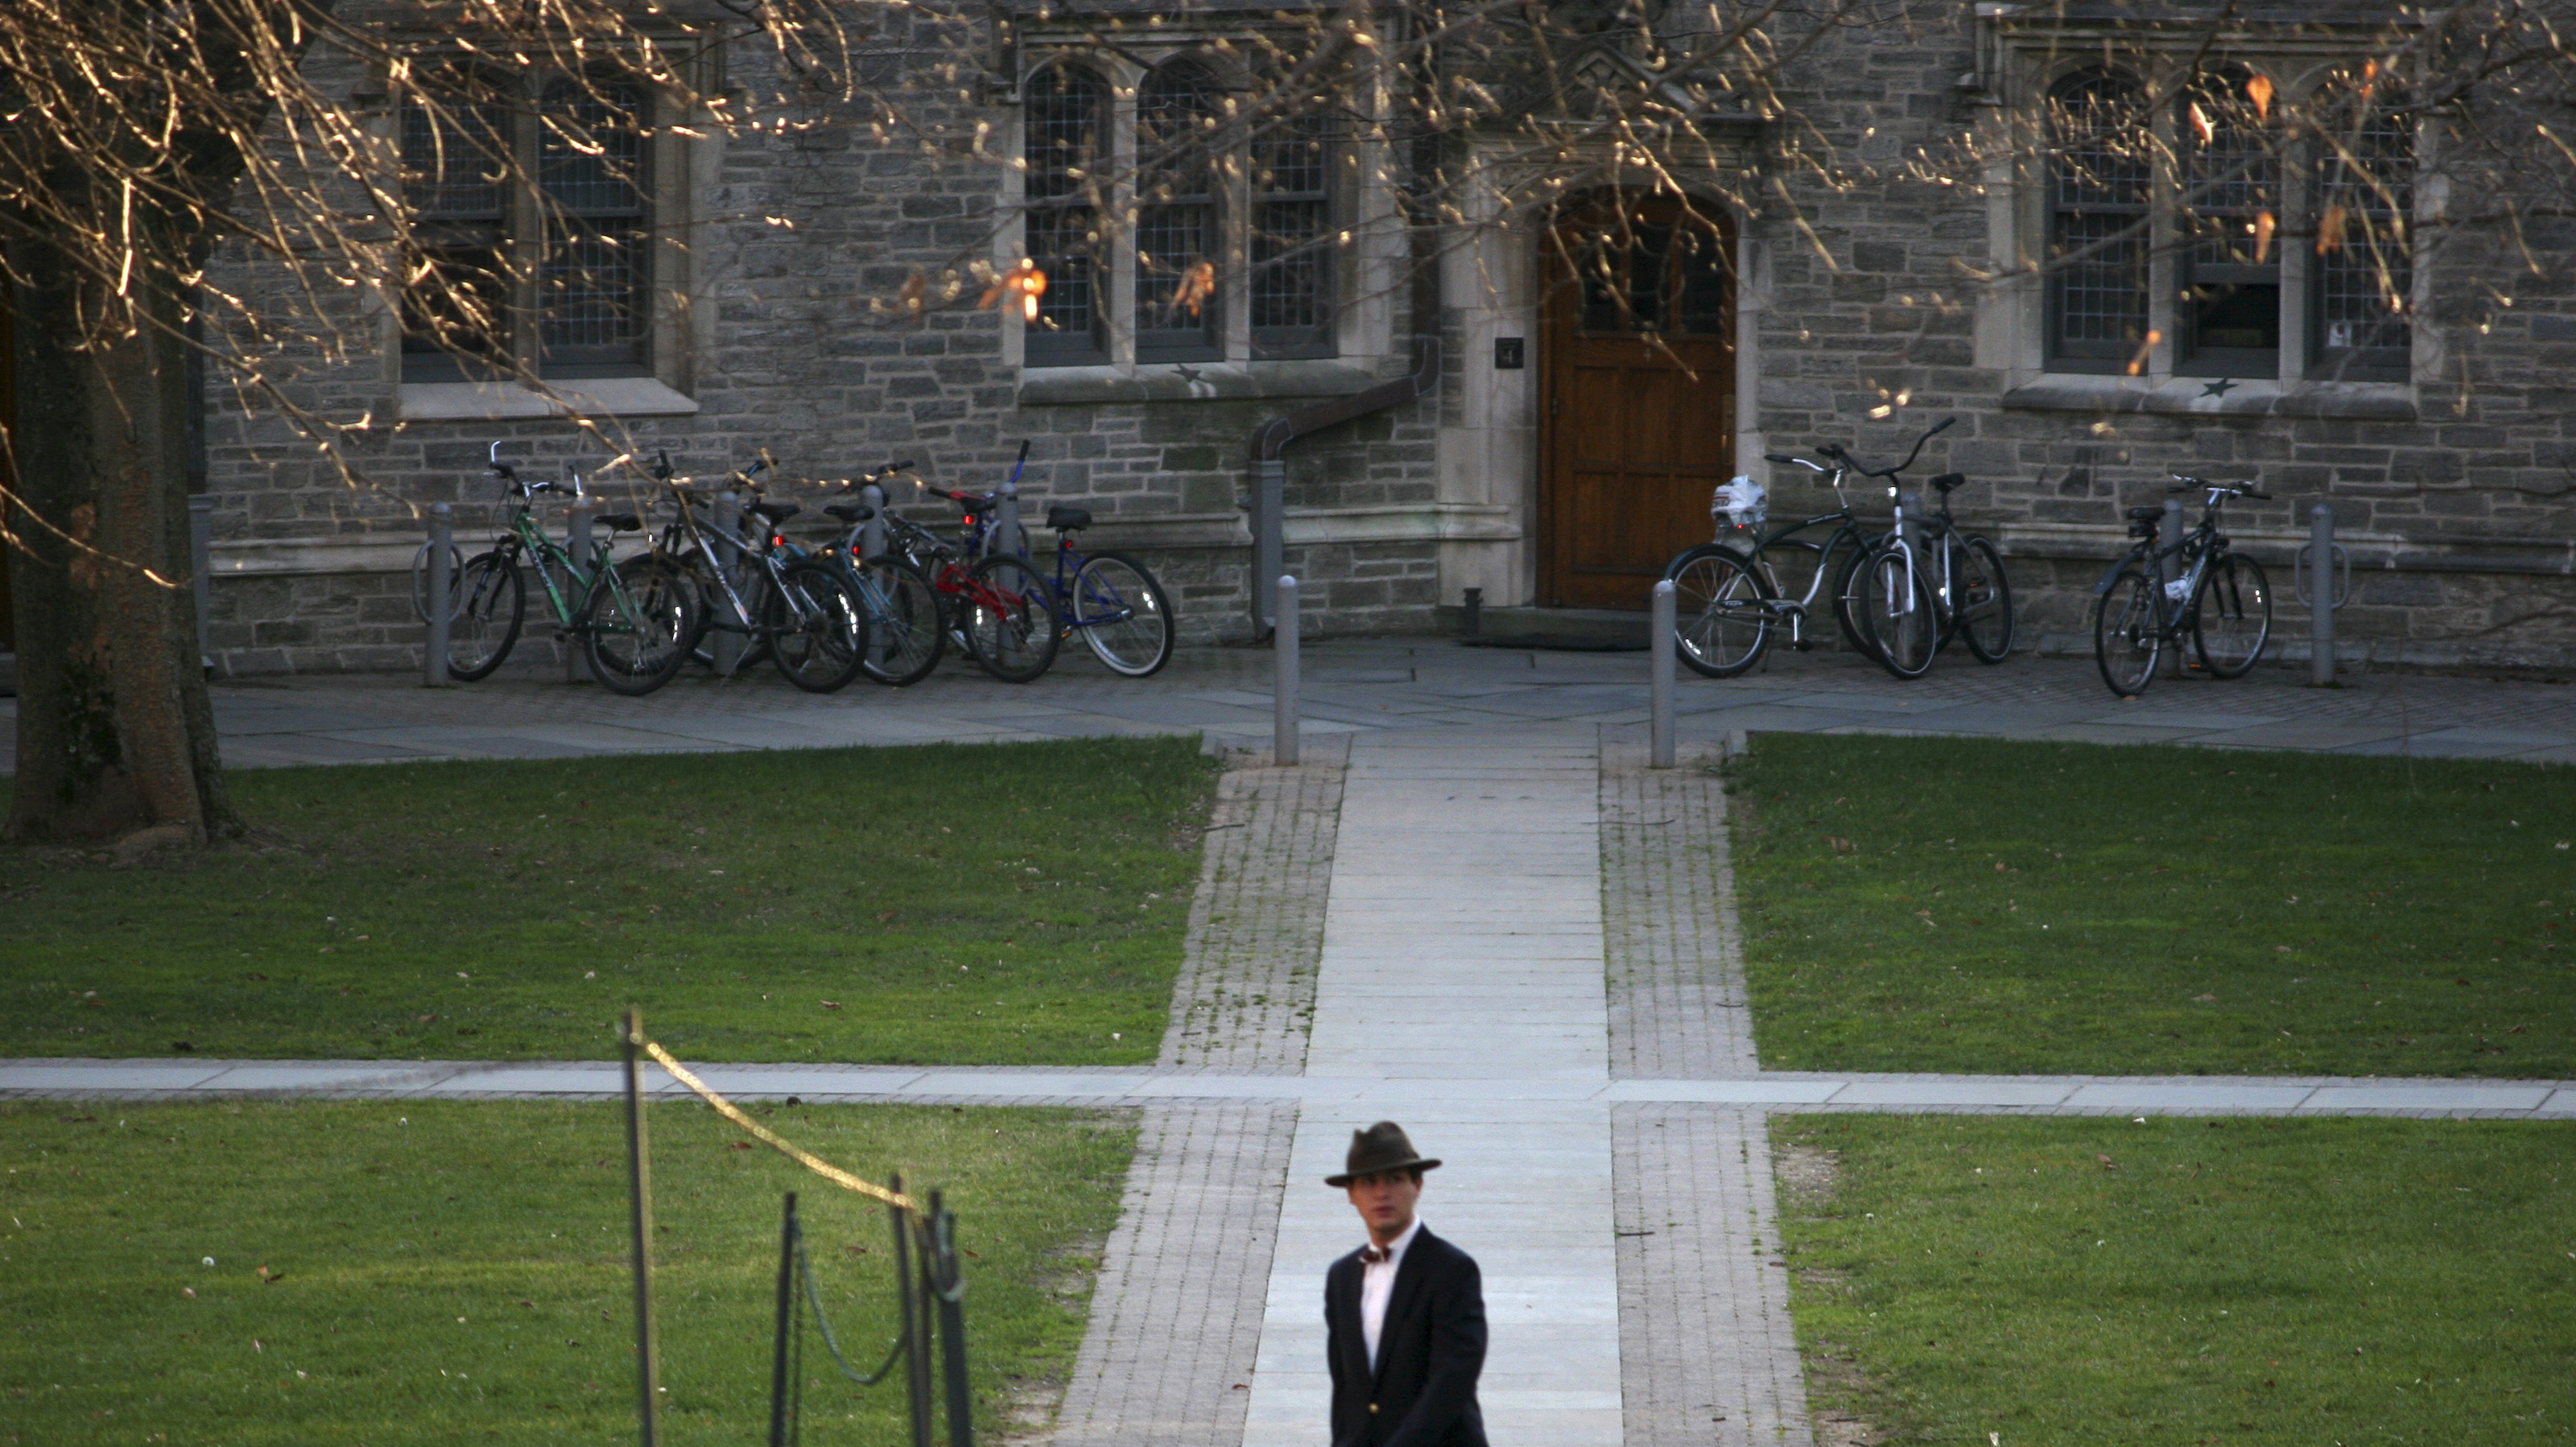 A man walks on the campus of Princeton University in Princeton, New Jersey, November 30, 2009. Reuters correspondents with local knowledge help visitors make the most of a 48-hour visit to Princeton, which is situated 50 miles (80 km) south of New York City and surrounded by fruit and vegetable farms. Picture taken November 30, 2009. To match Reuters Life! TRAVEL-PRINCETON/ REUTERS/Steve James (UNITED STATES - Tags: SOCIETY TRAVEL EDUCATION) - GM1E62Q1MTV01